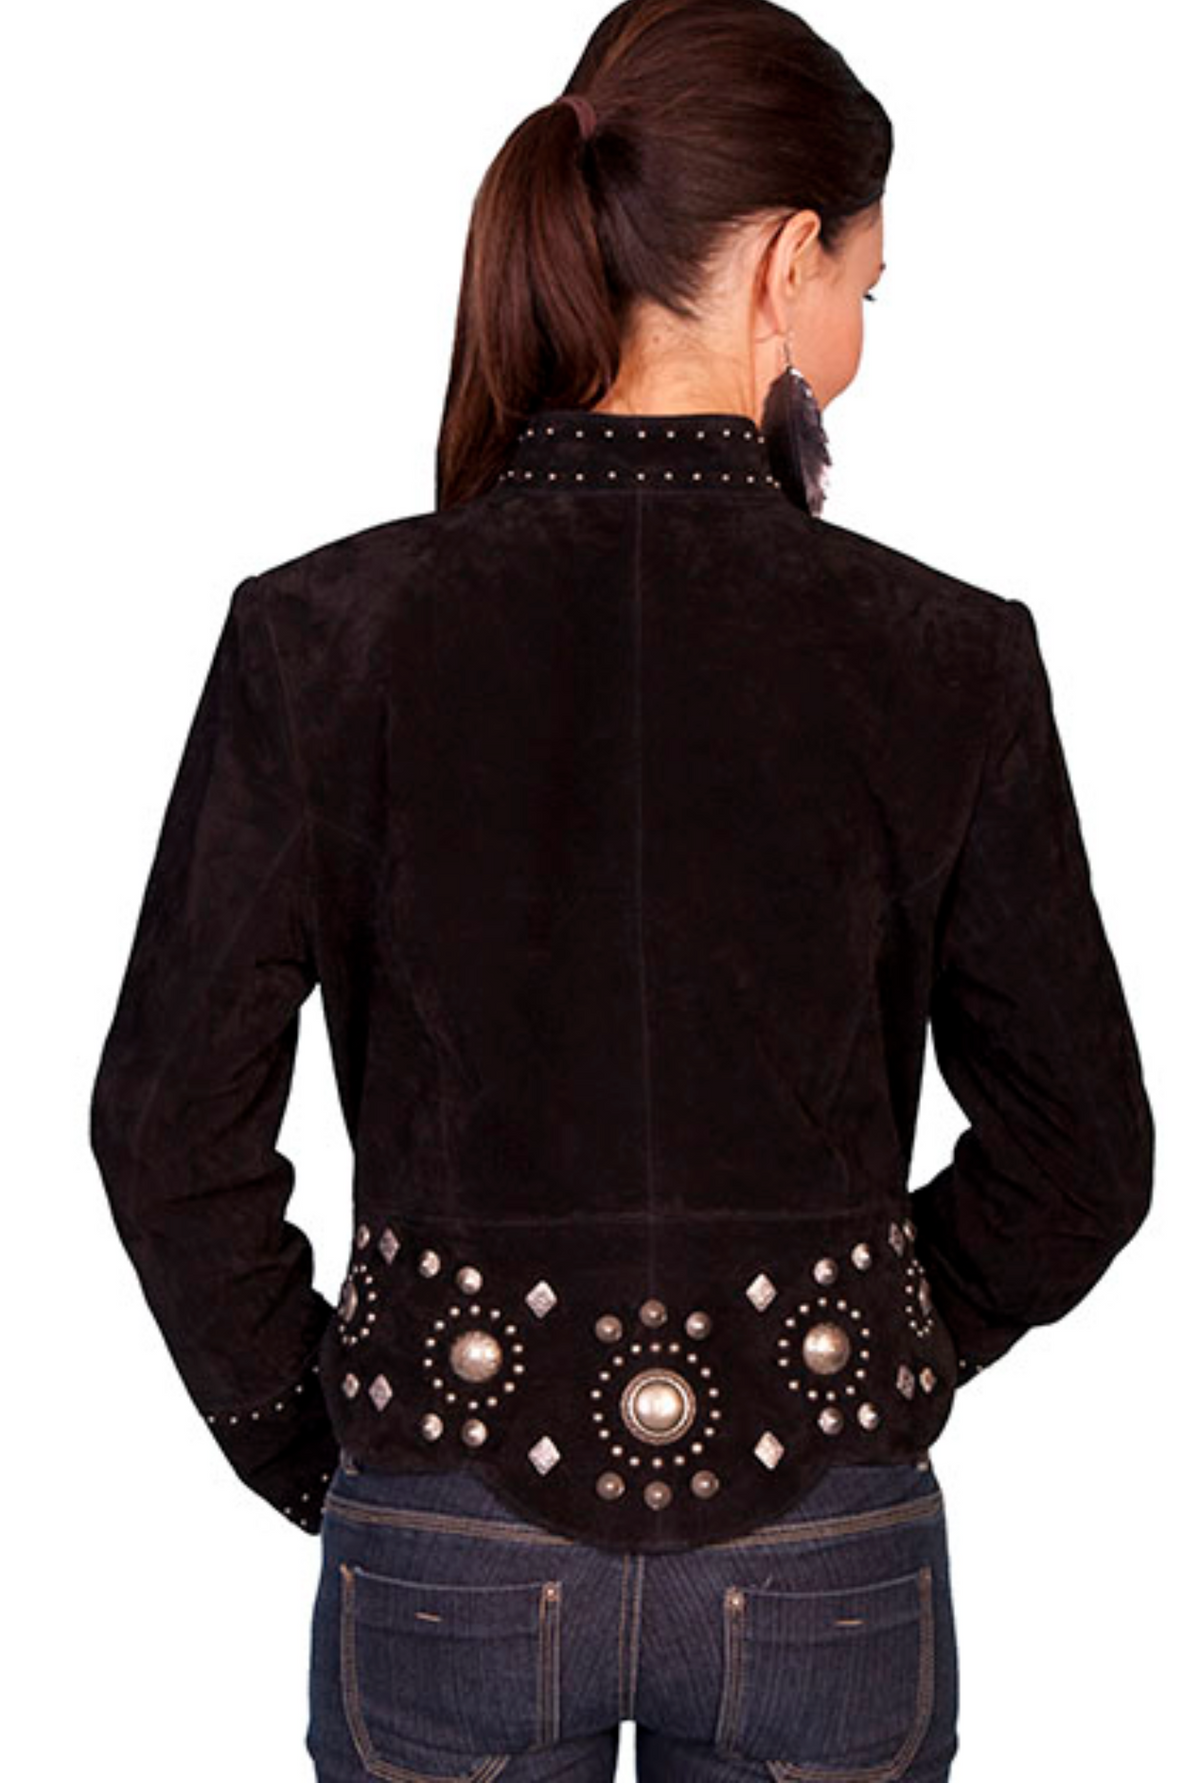 Tell Me About It, Stud Jacket by Scully